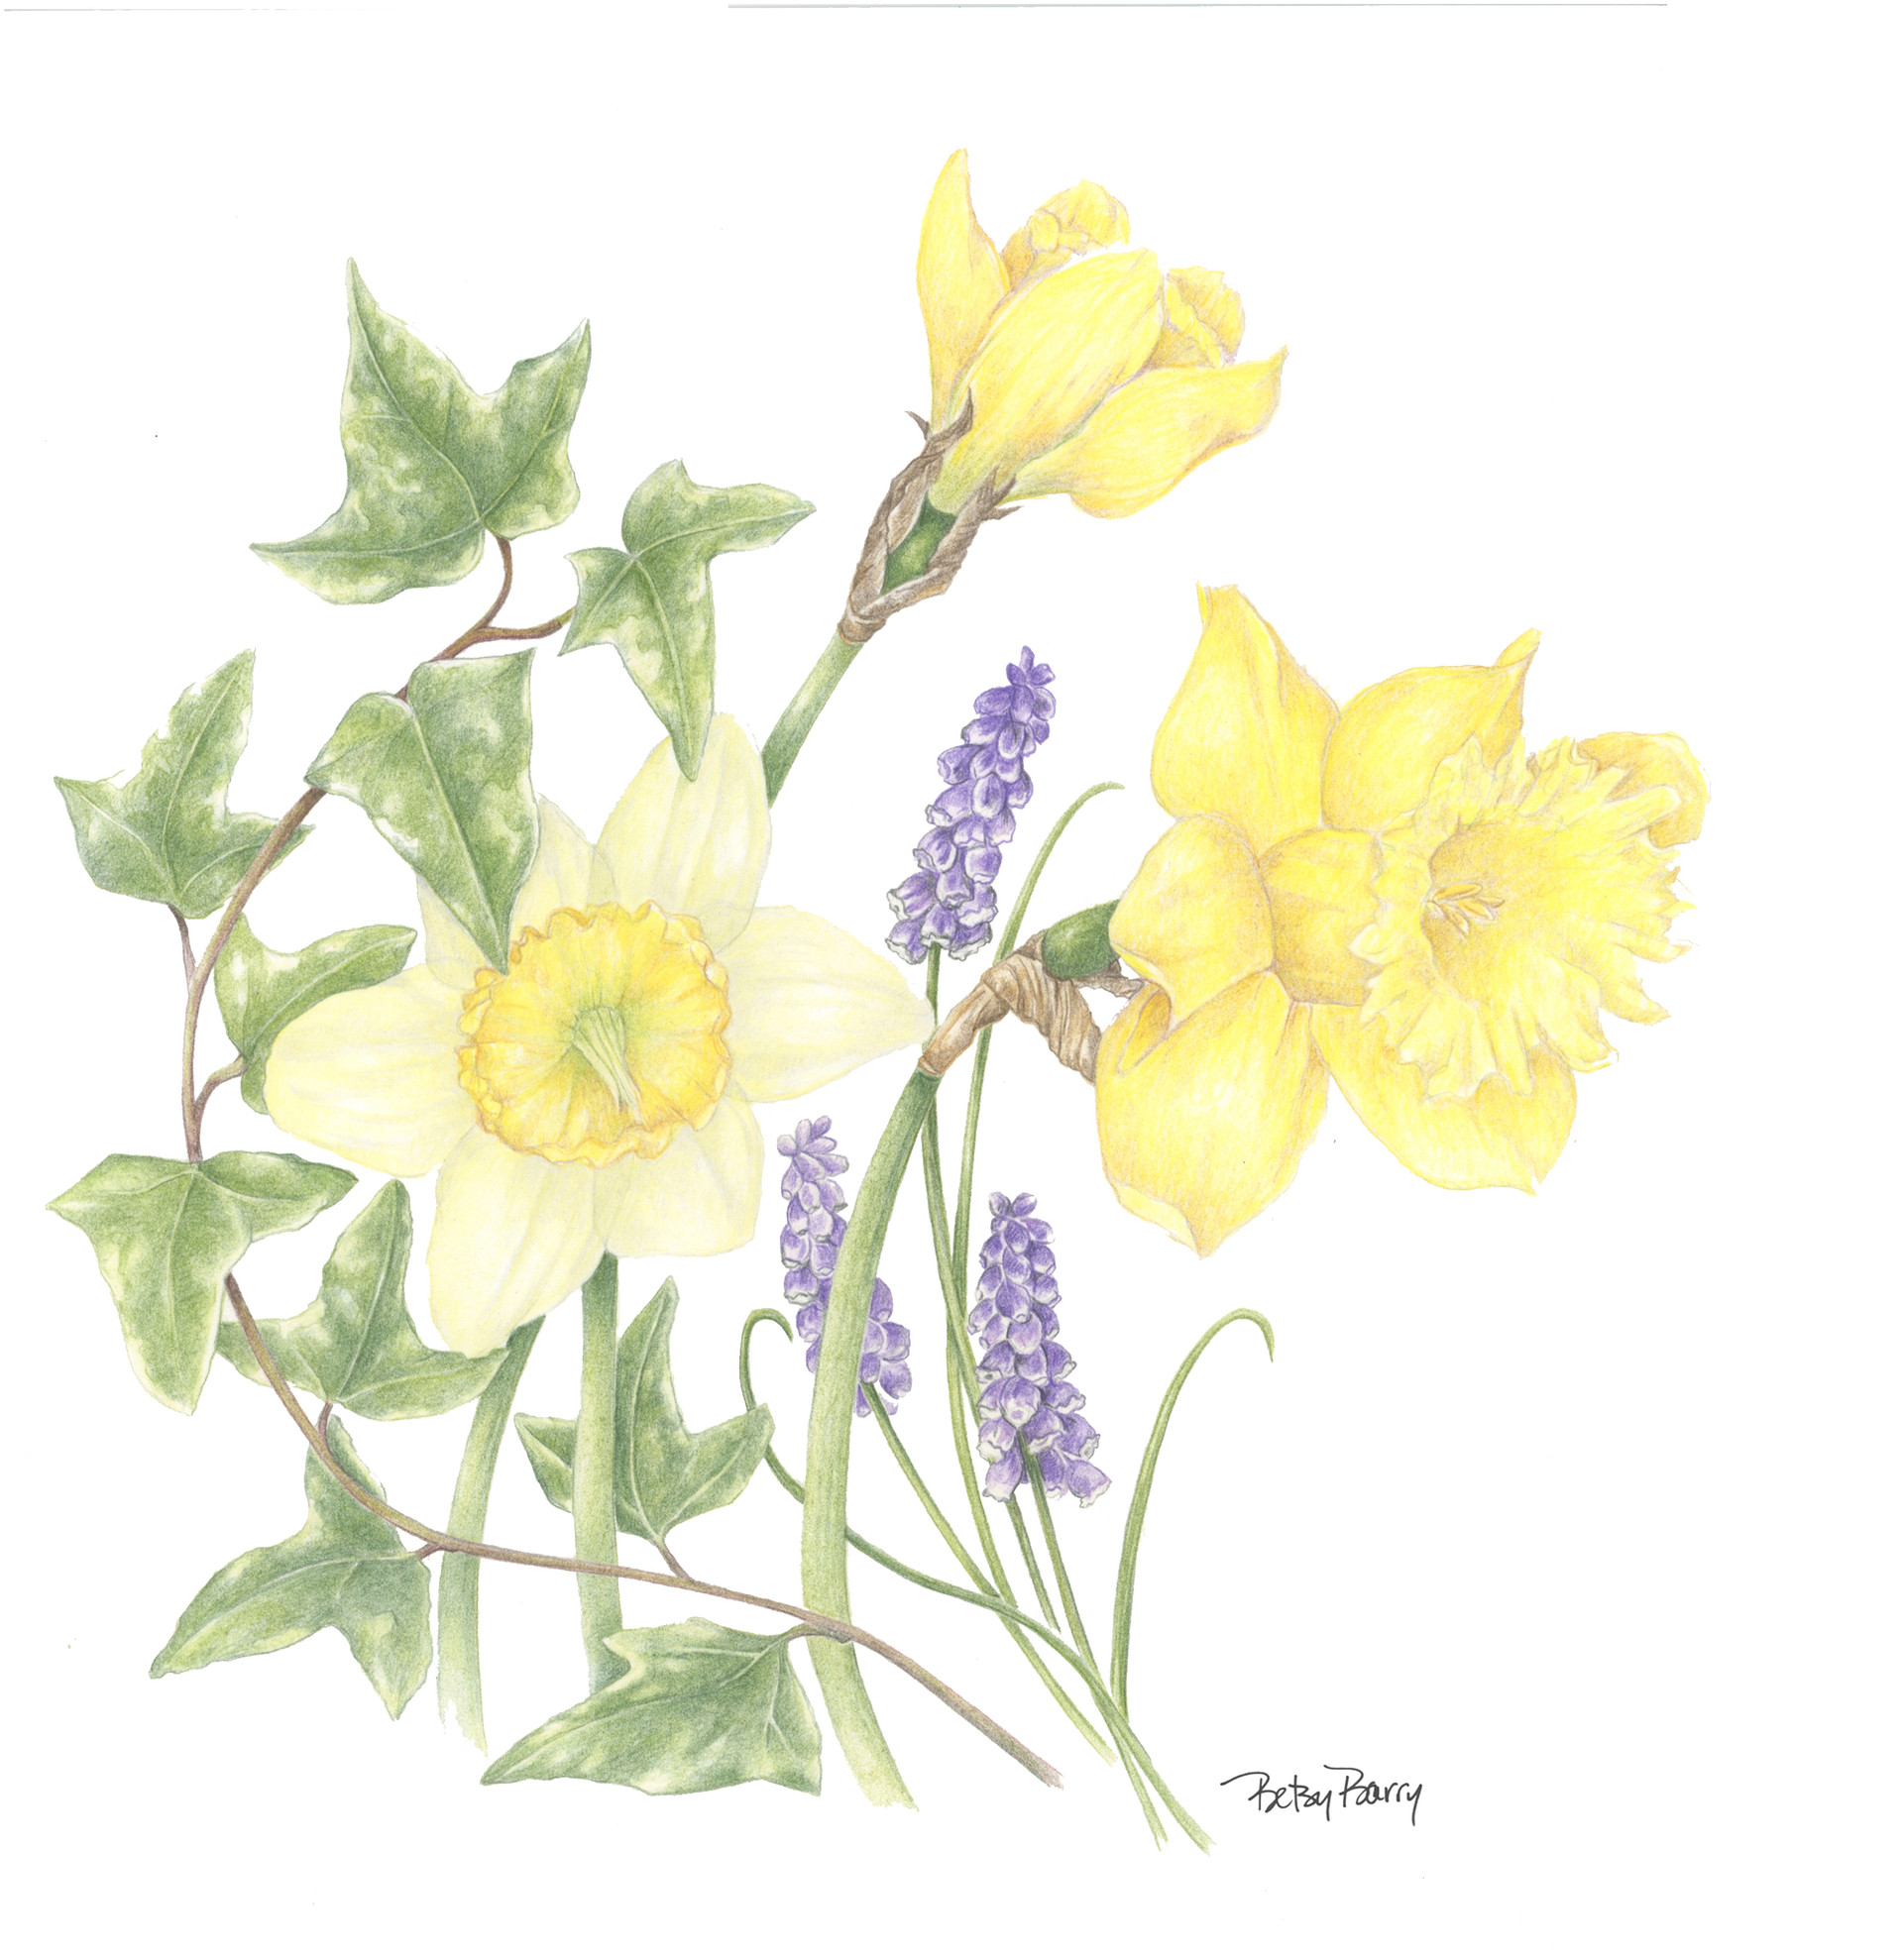 Daffodils and Ivy